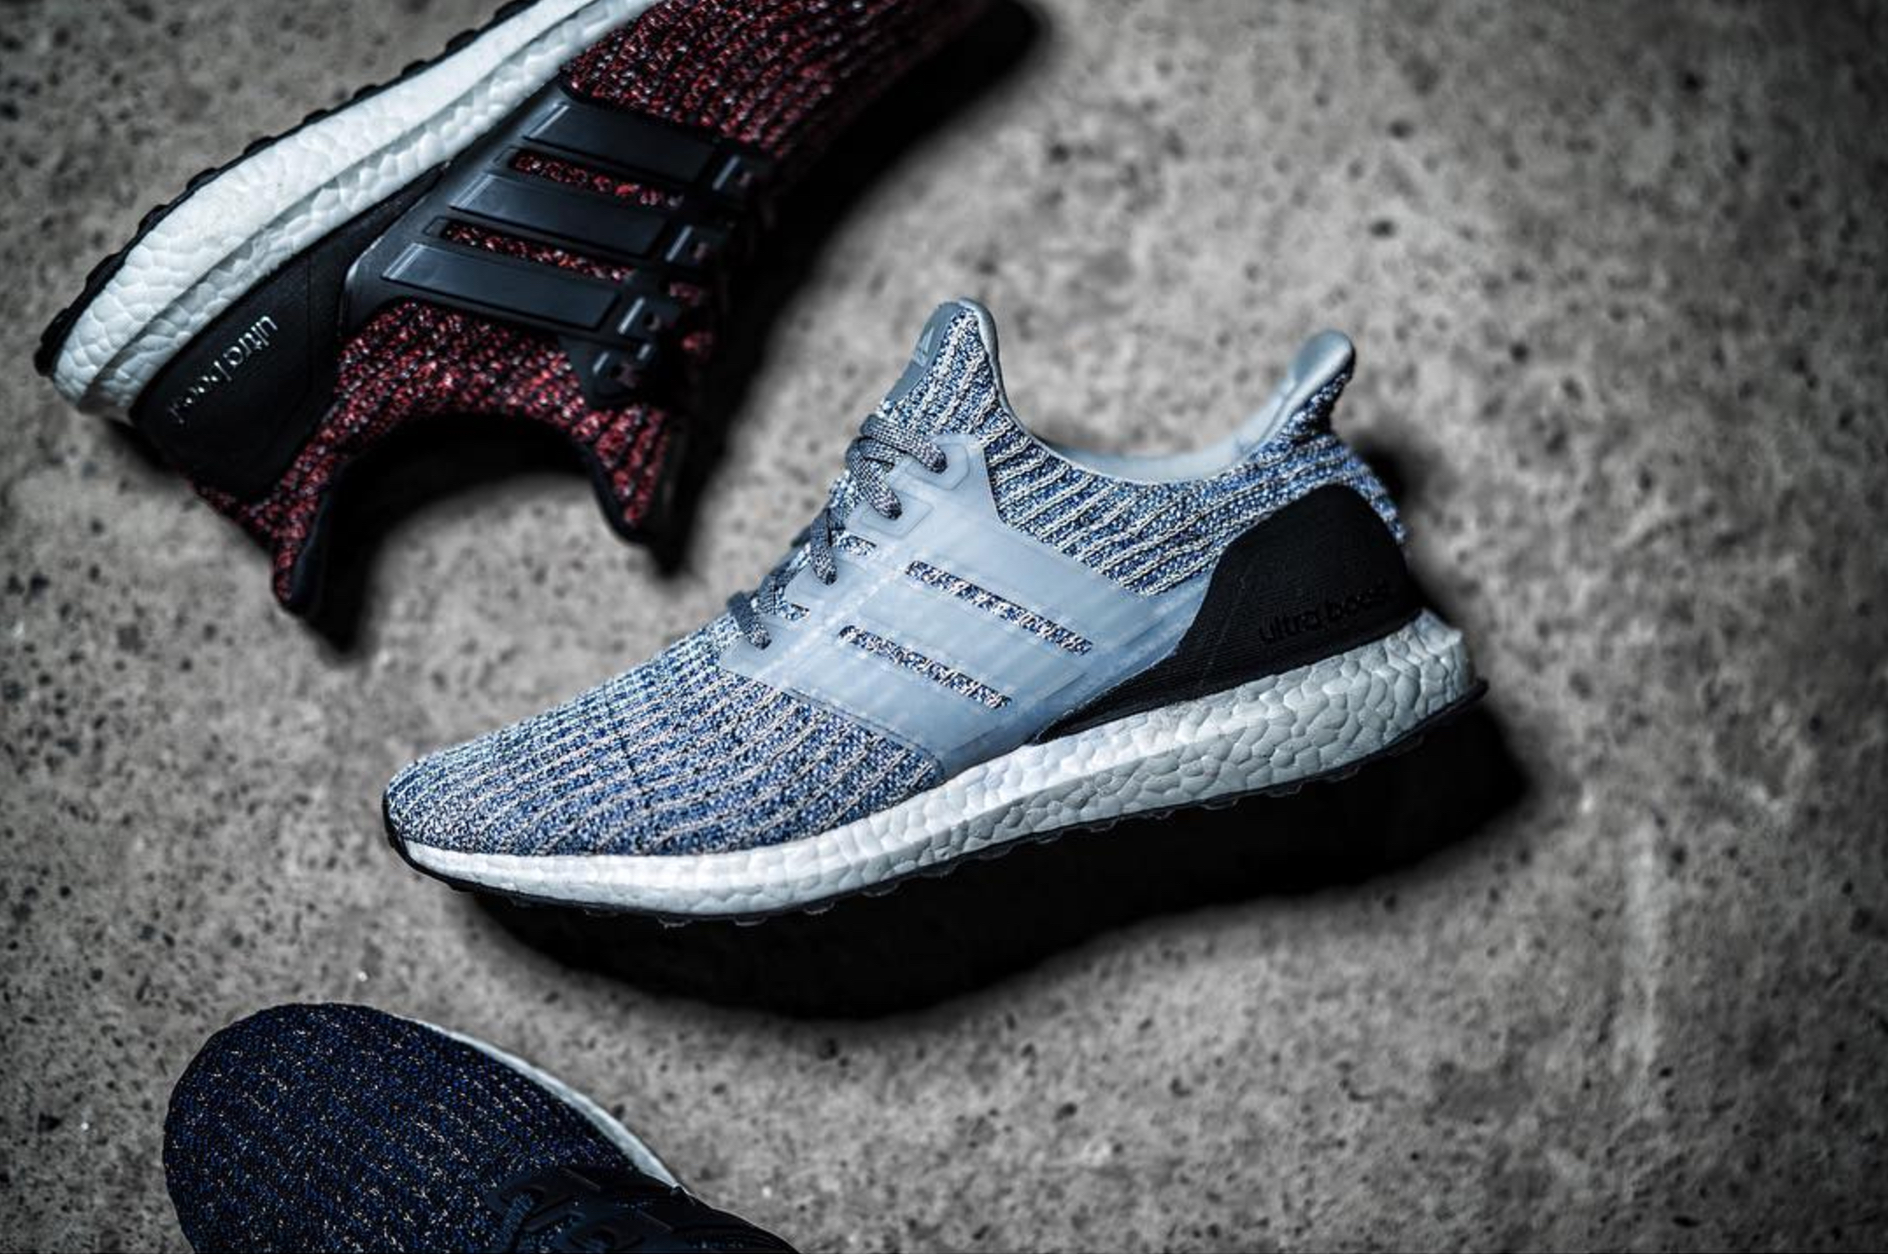 separation shoes fdbd7 273f2 adidas ultra boost Archives - WearTesters